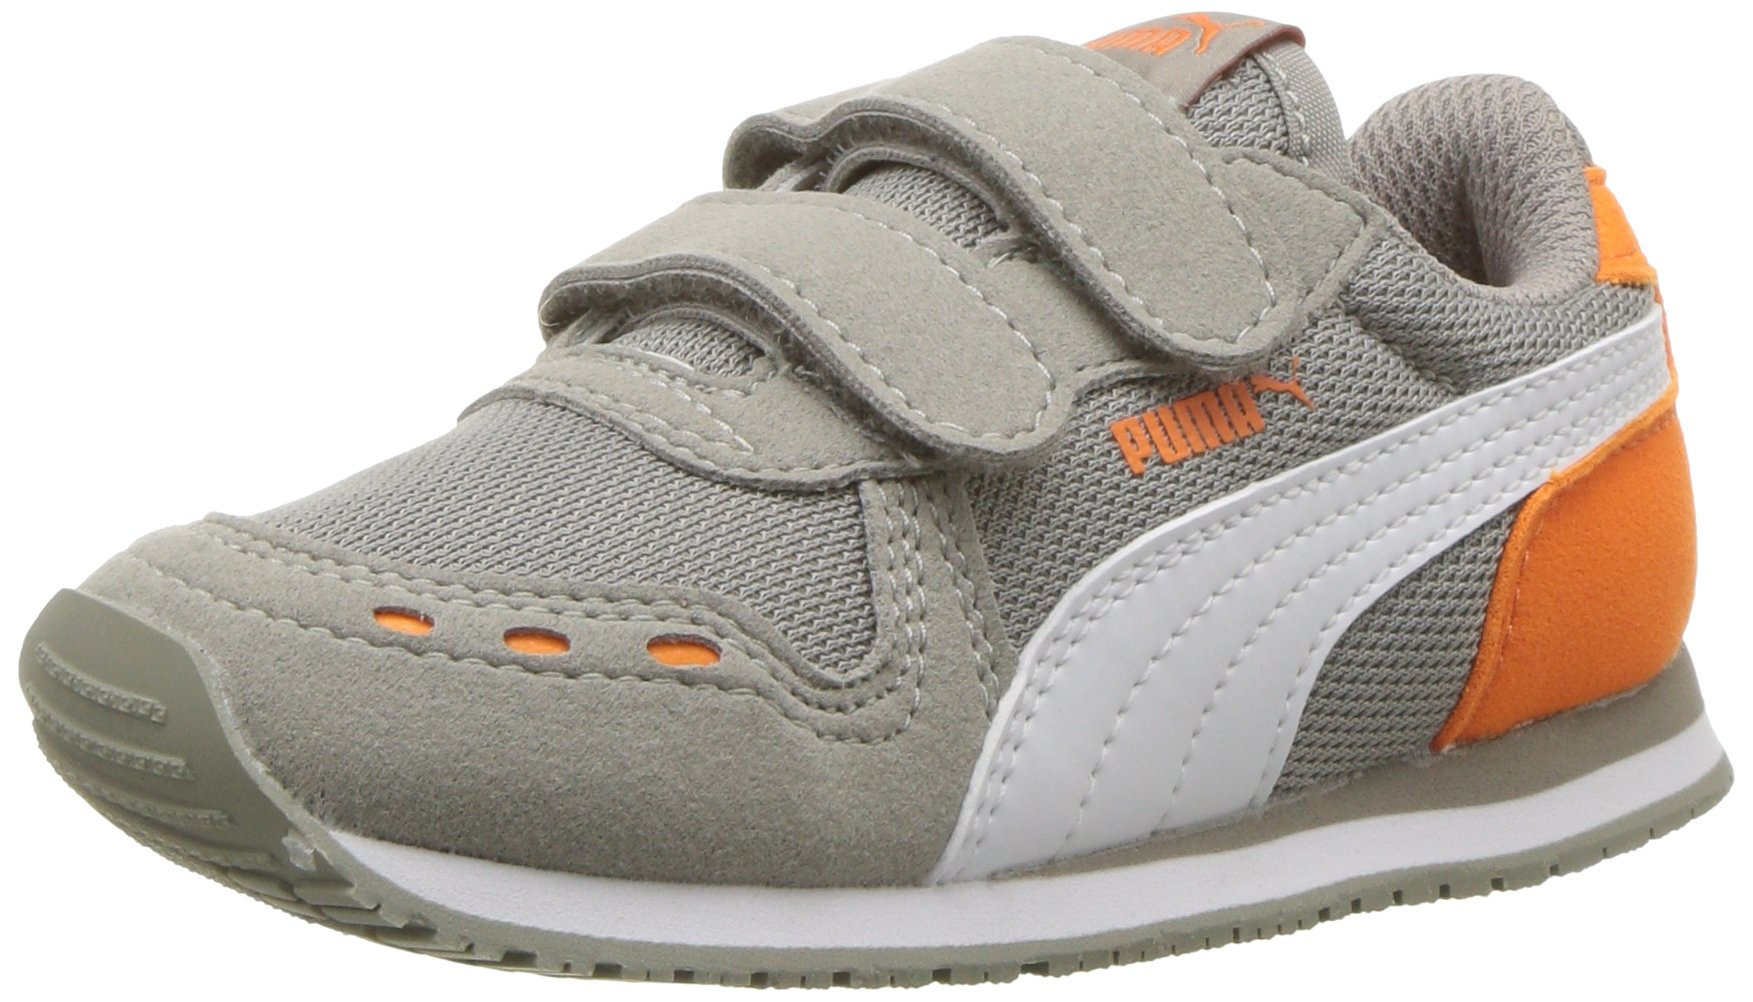 PUMA Baby Cabana Racer Mesh AC Sneakers INF, Rock Ridge-White-Vibrant Orange, 9 M US Toddler by PUMA